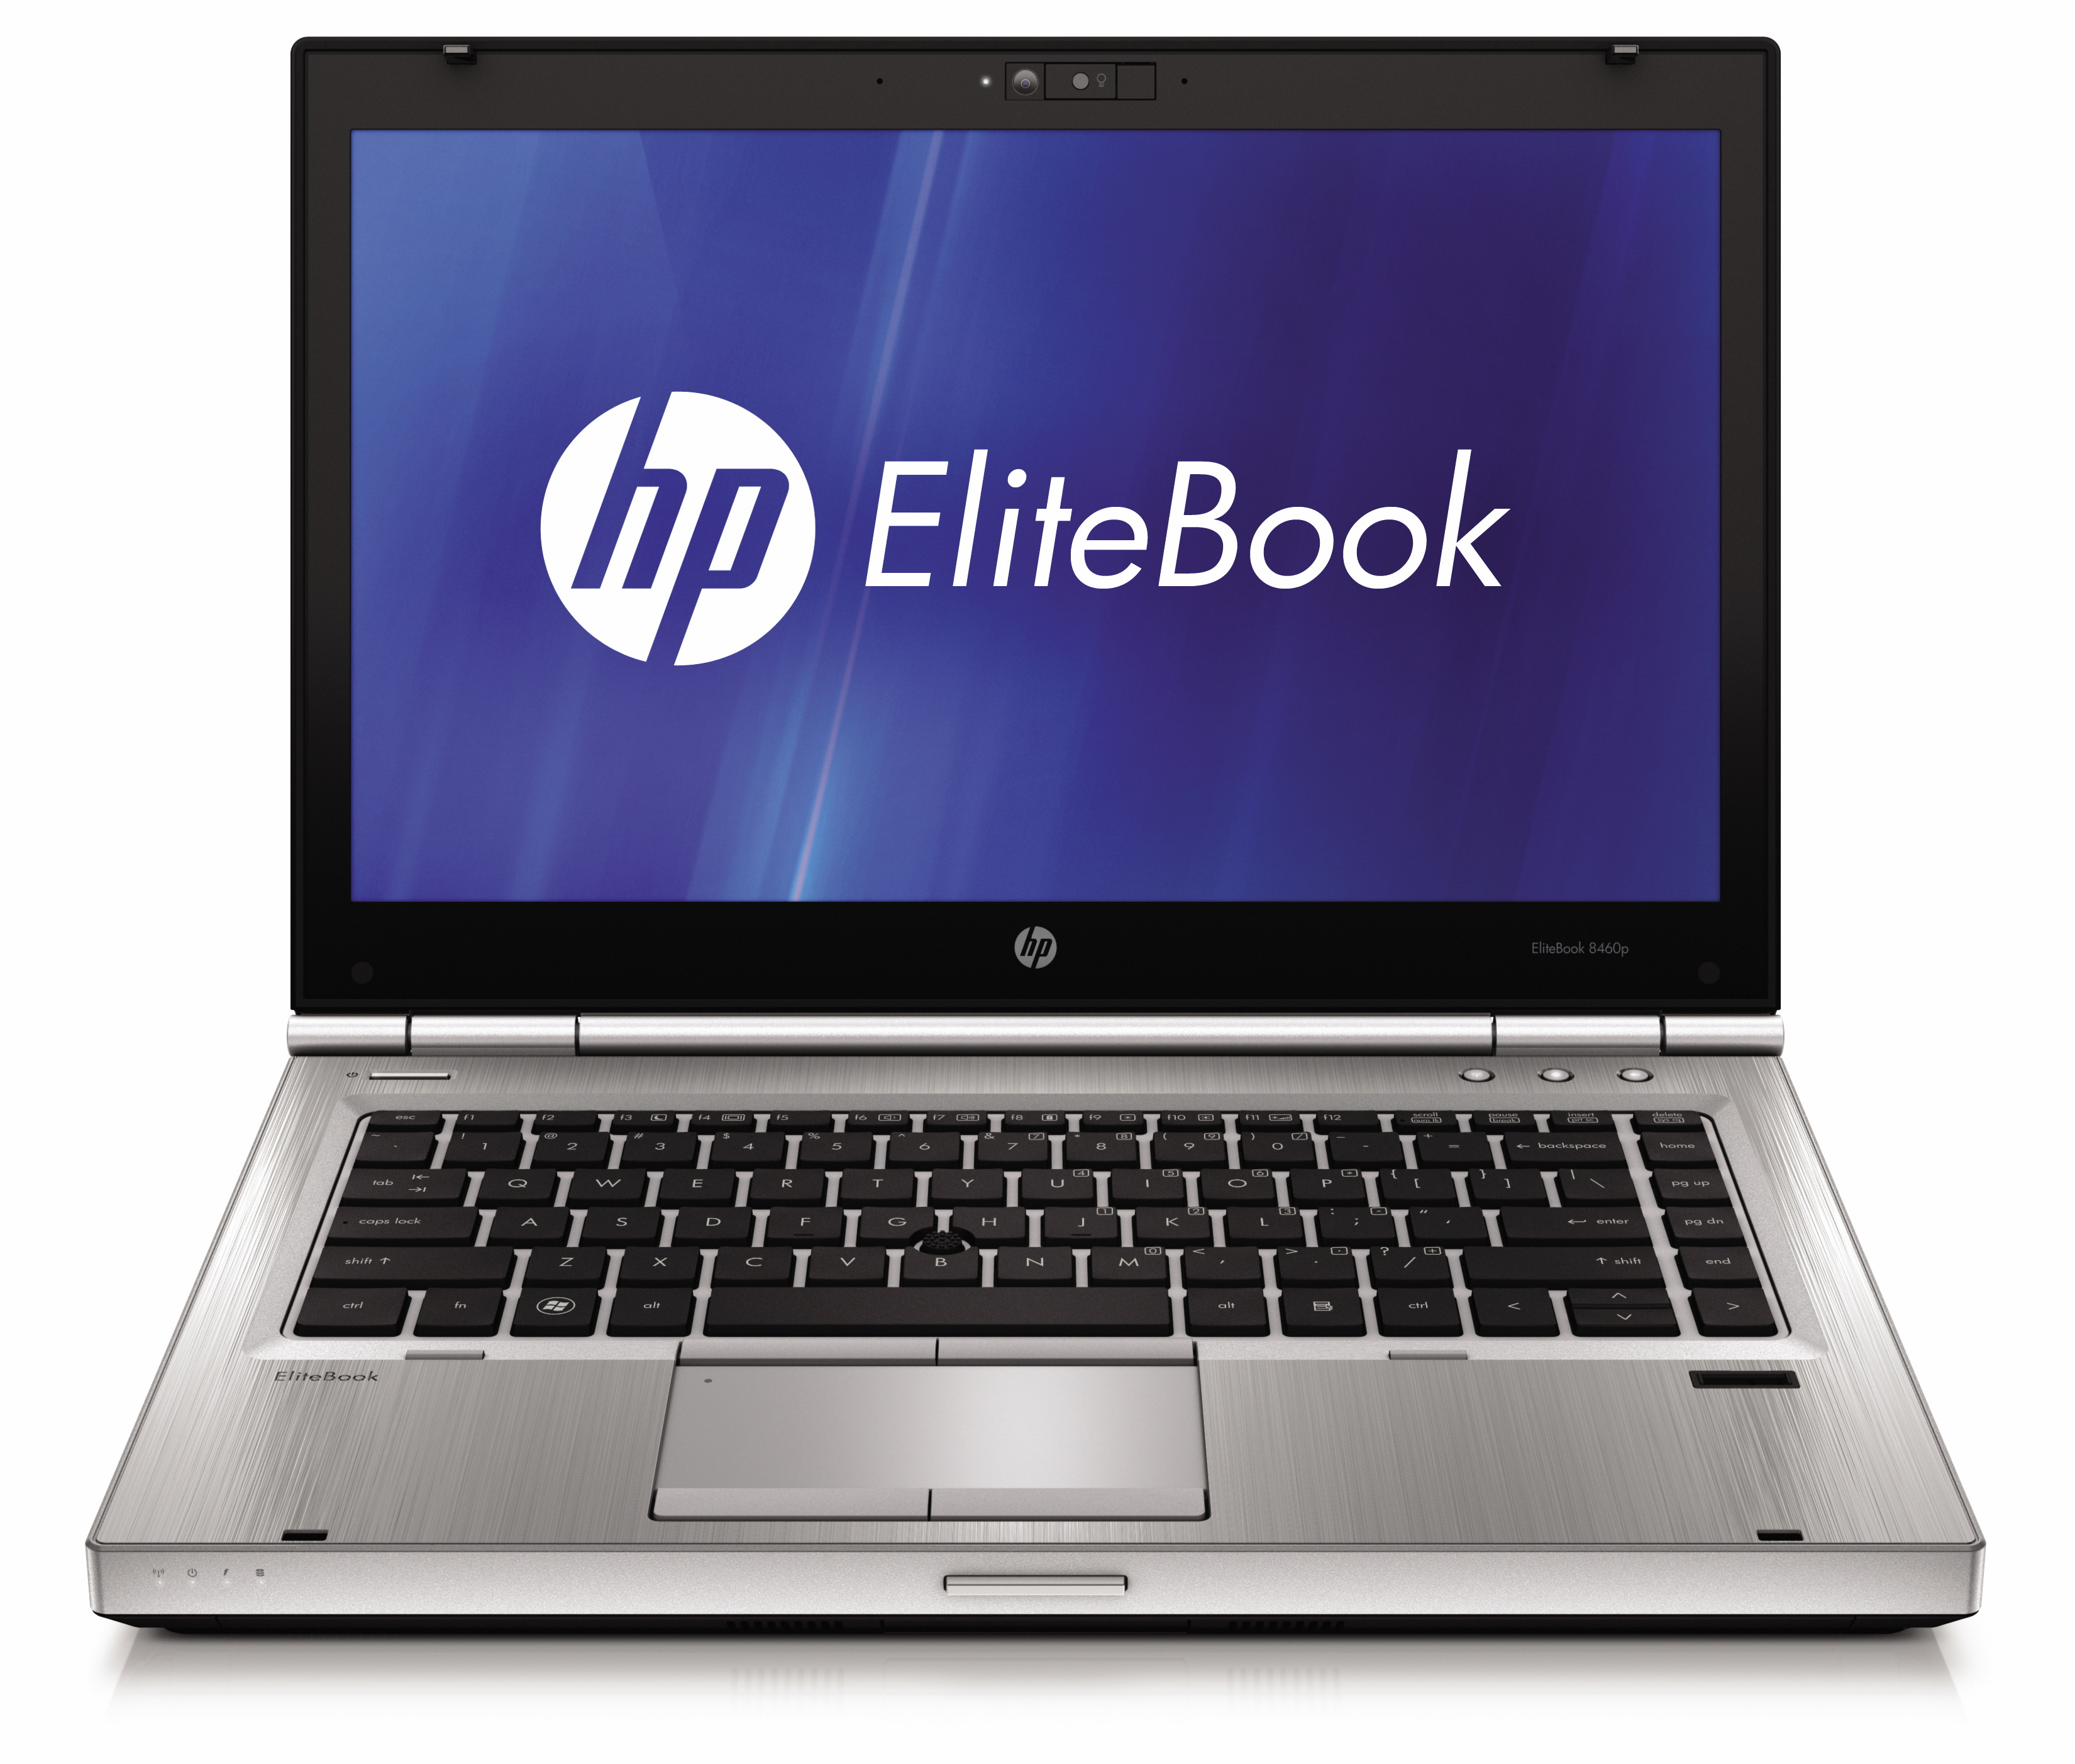 HP EliteBook p-series_front open